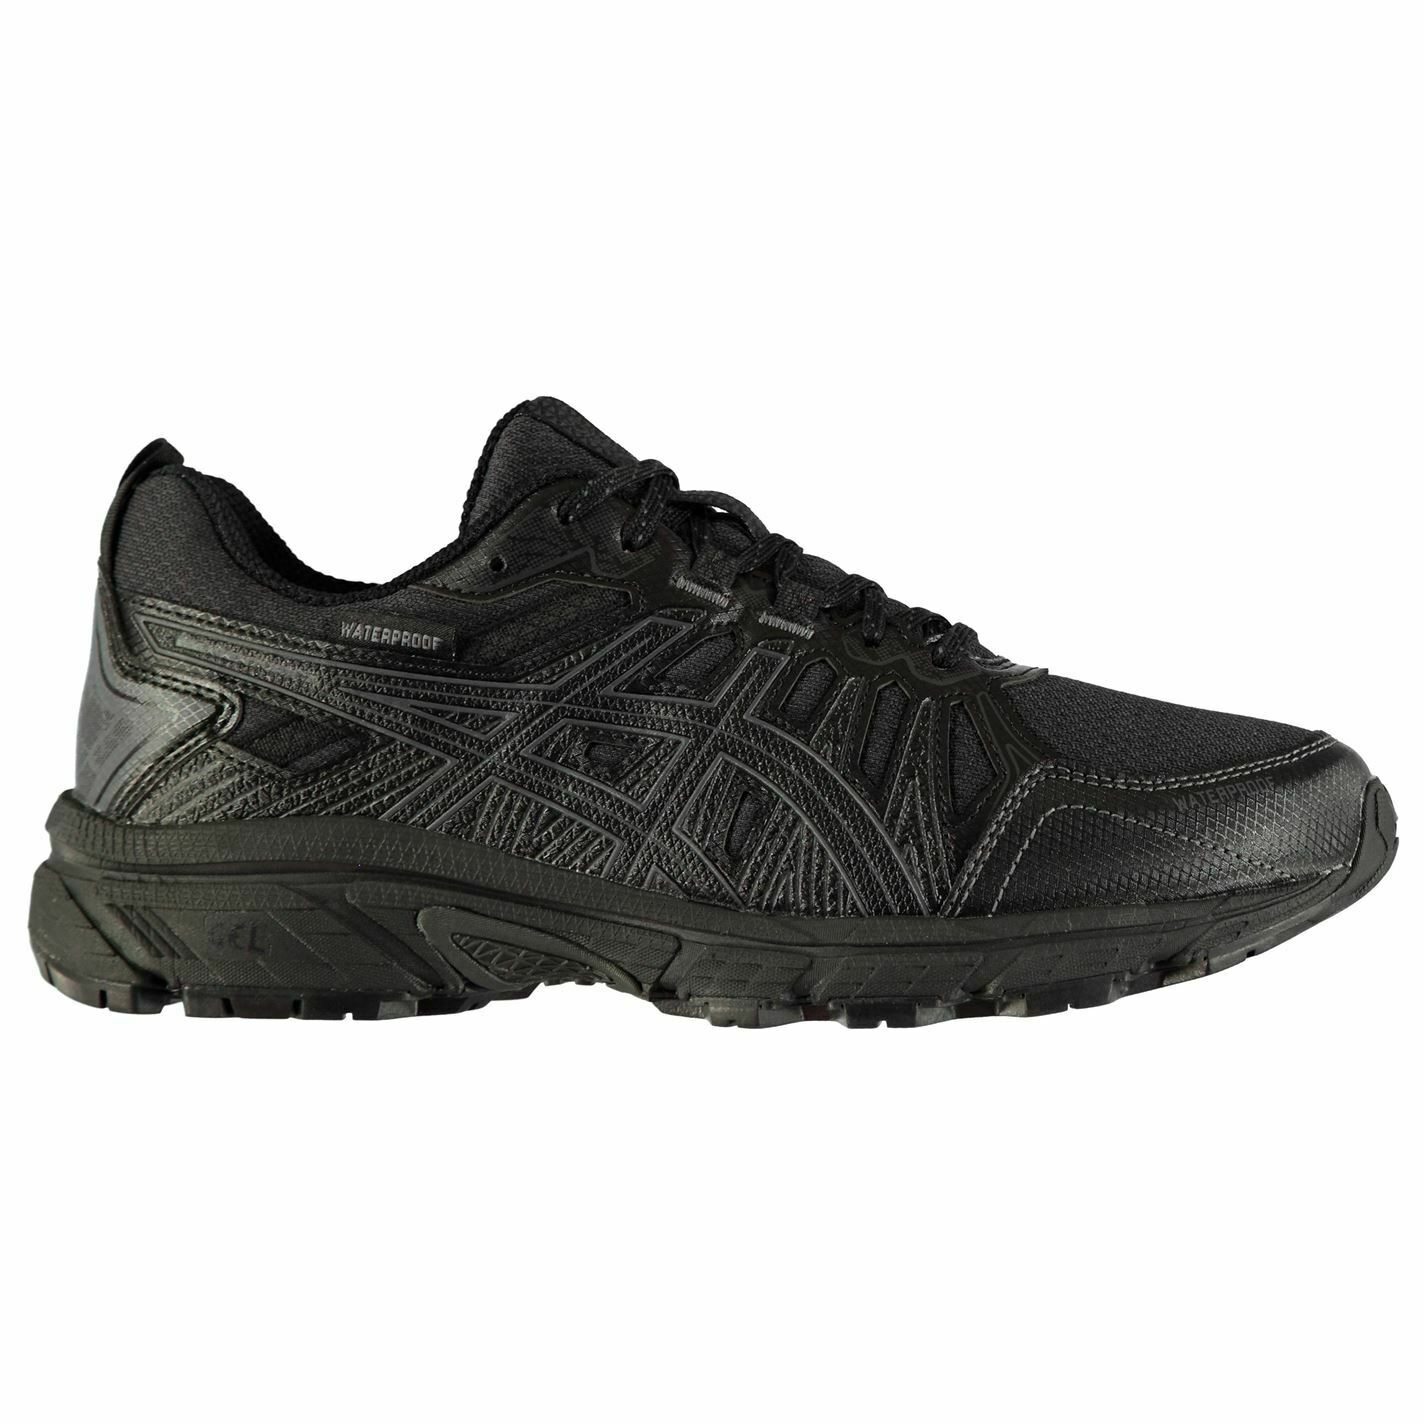 Para Mujer Asics Gel Venture 7 Impermeable Trail Running Zapatos Ortholite